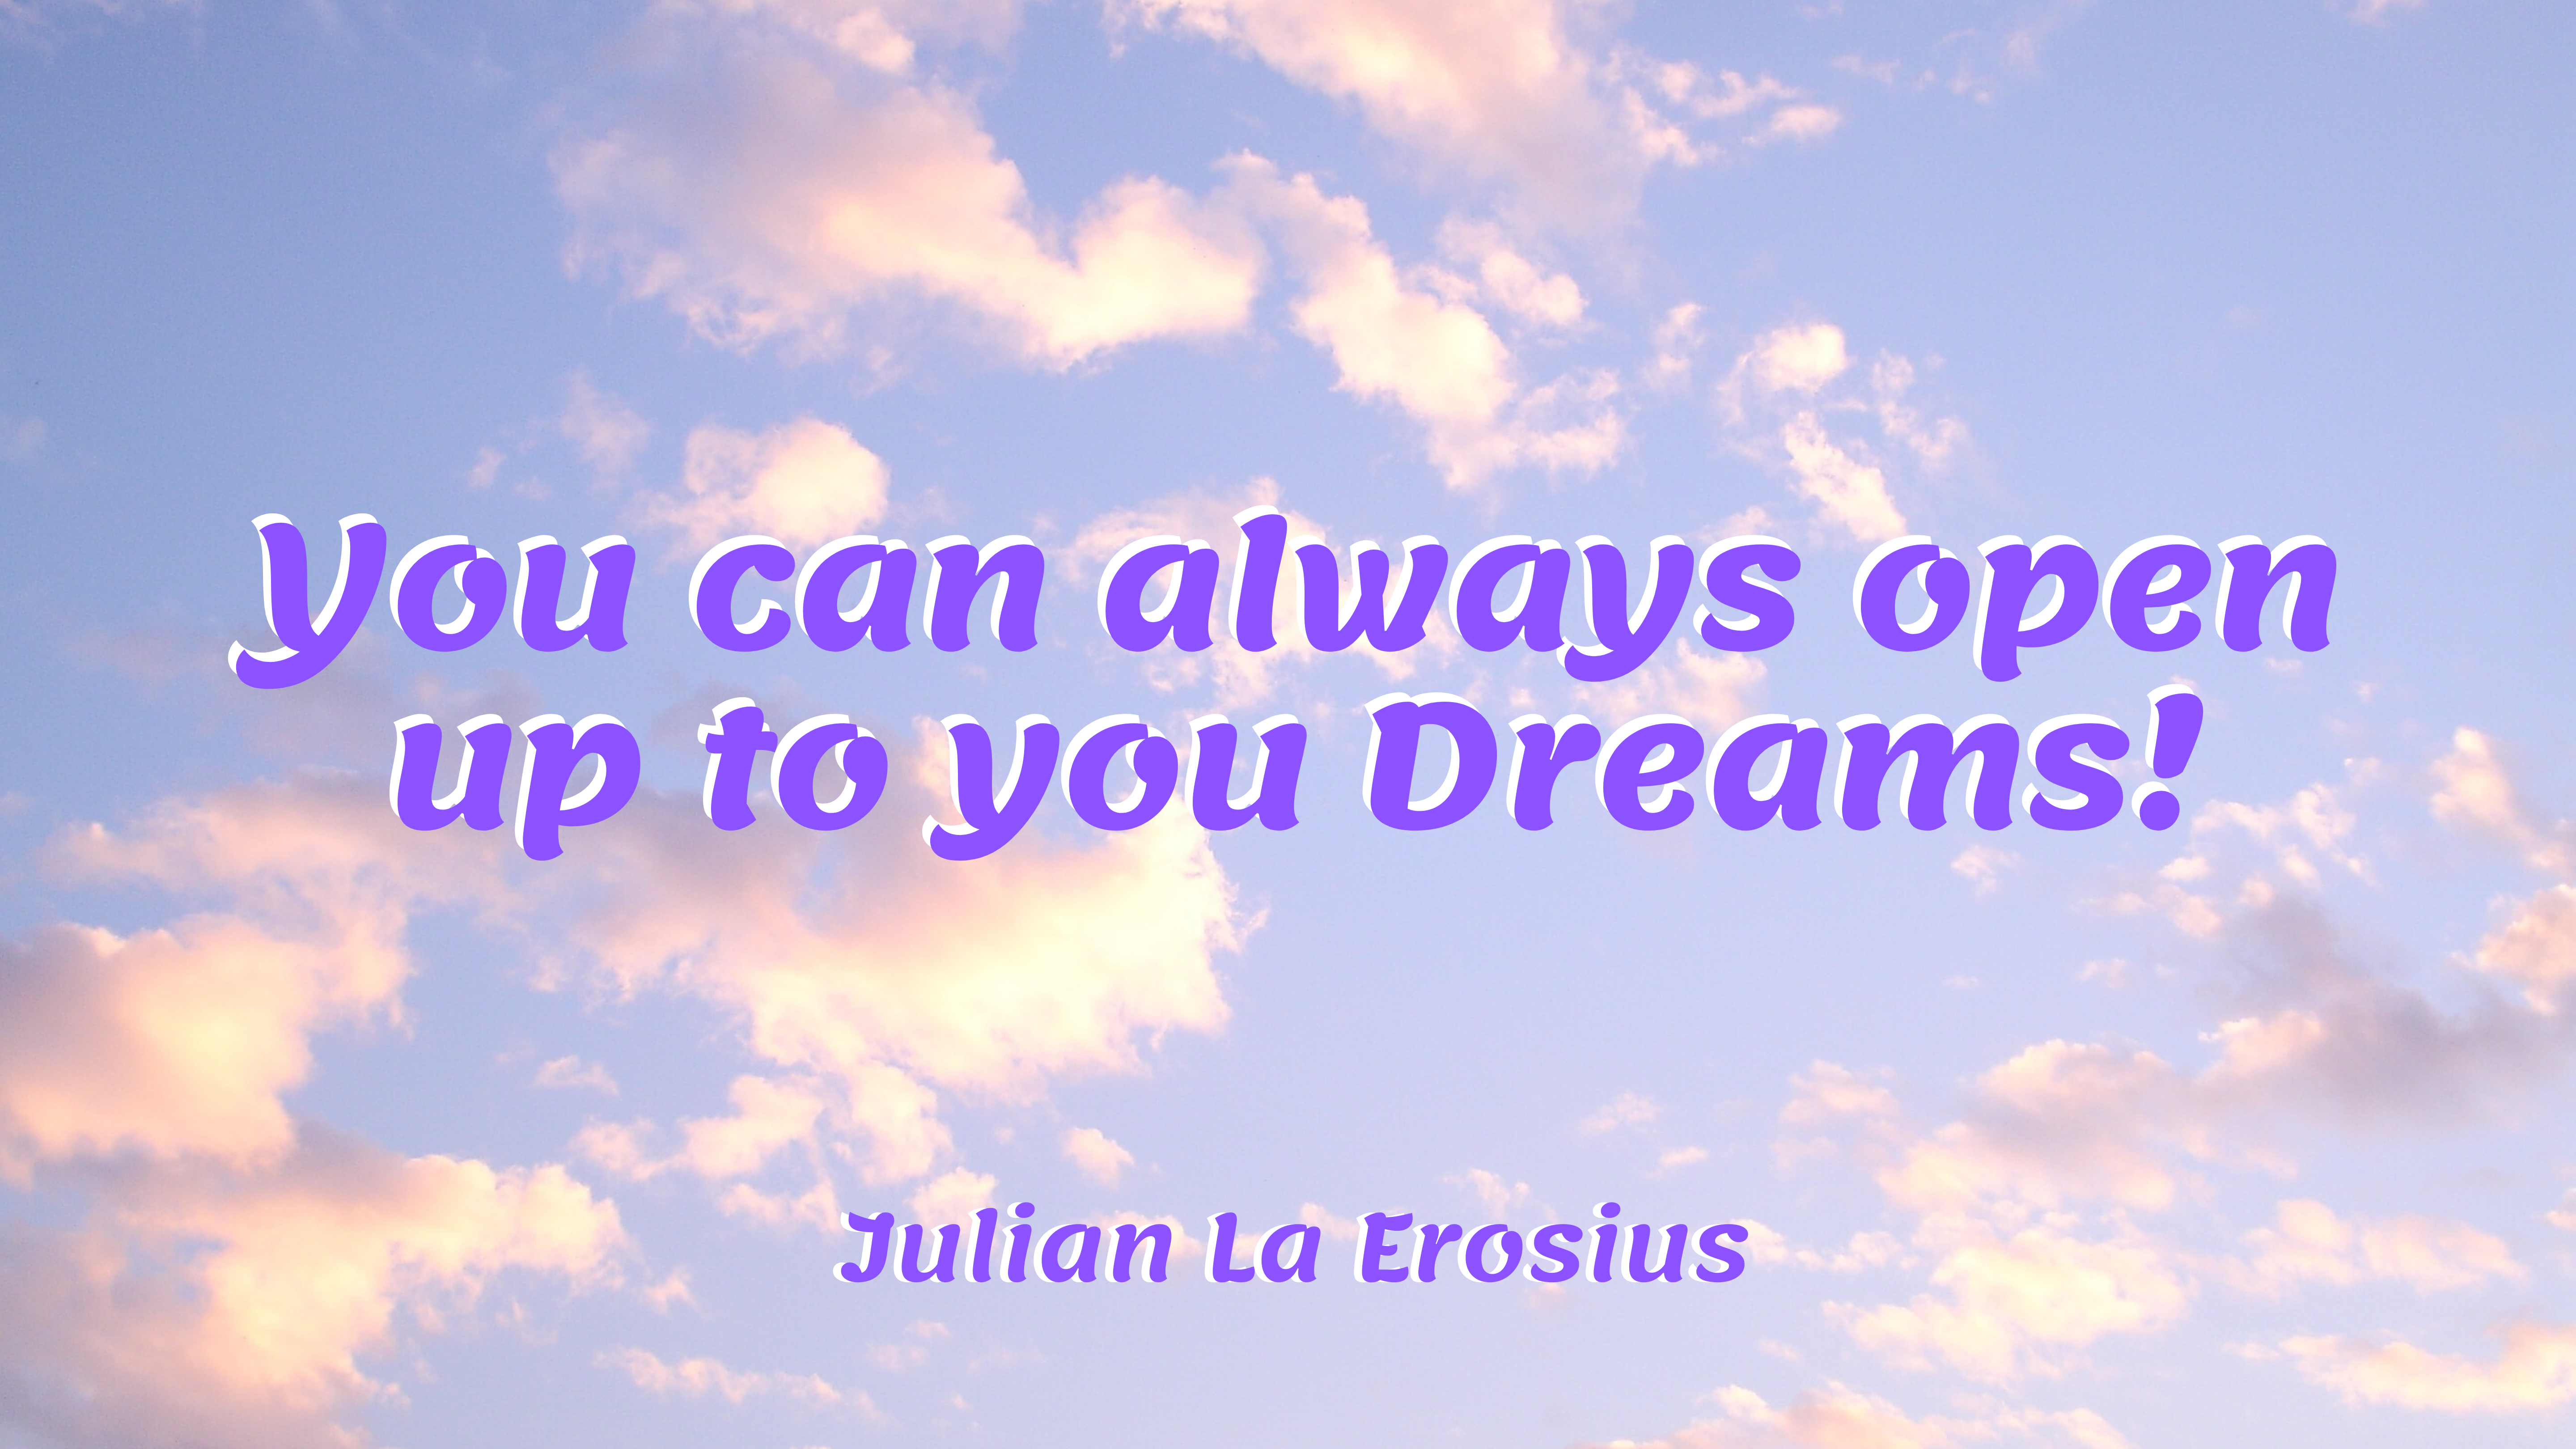 You can always open up to your dreams!